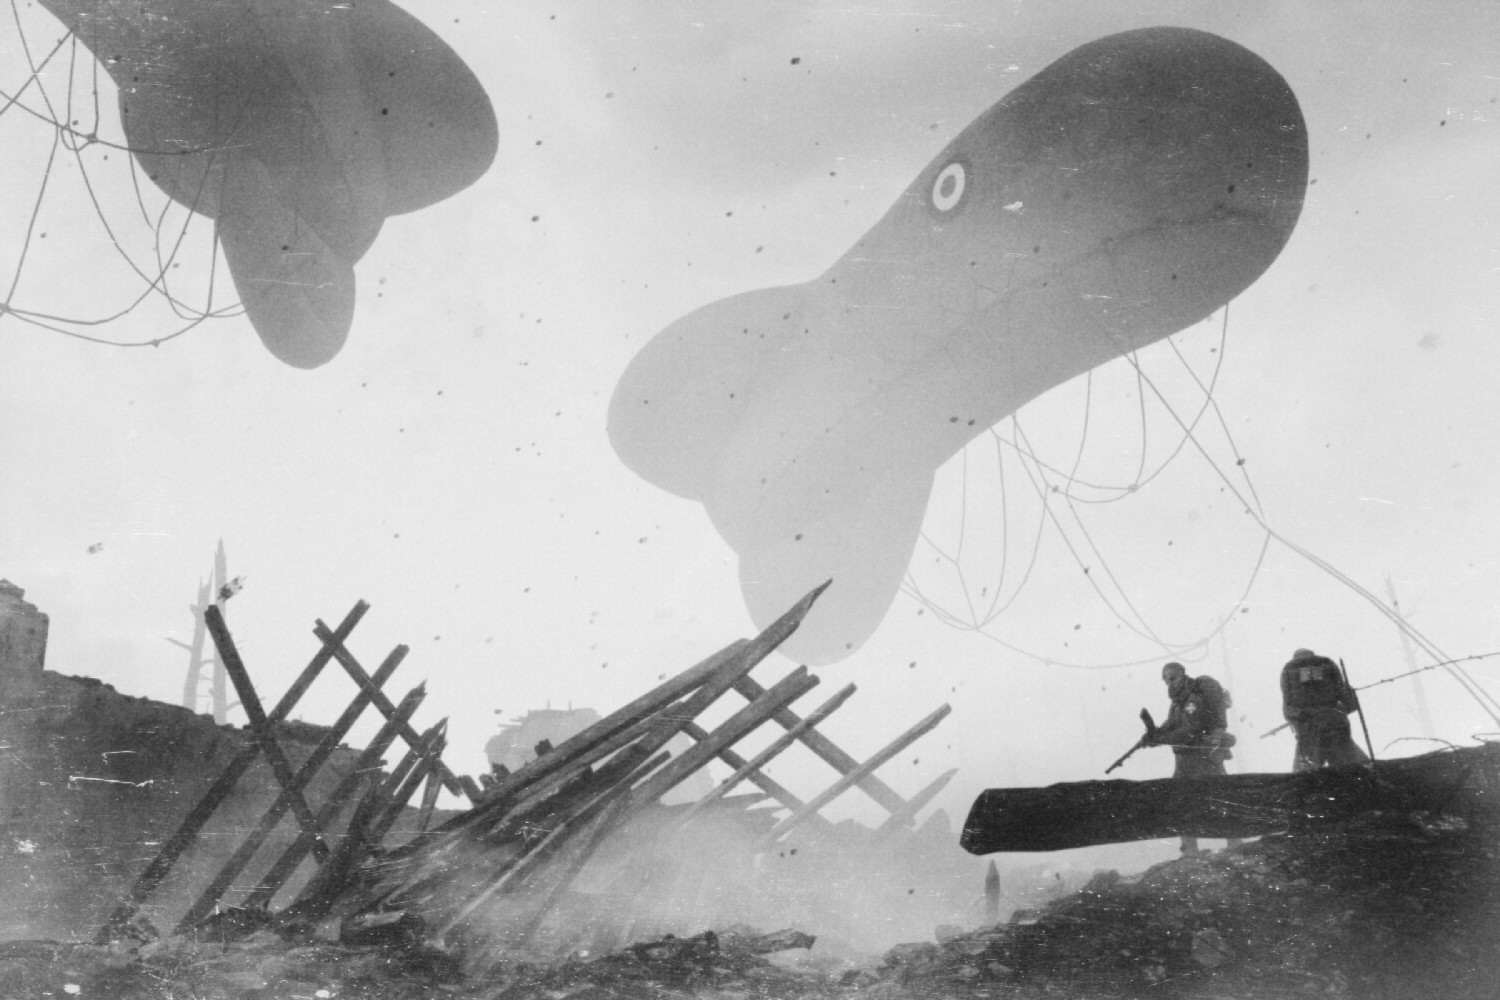 Battlefield 1 Screens Look Hauntingly Realistic With Black & White Filter 0wFWUw4